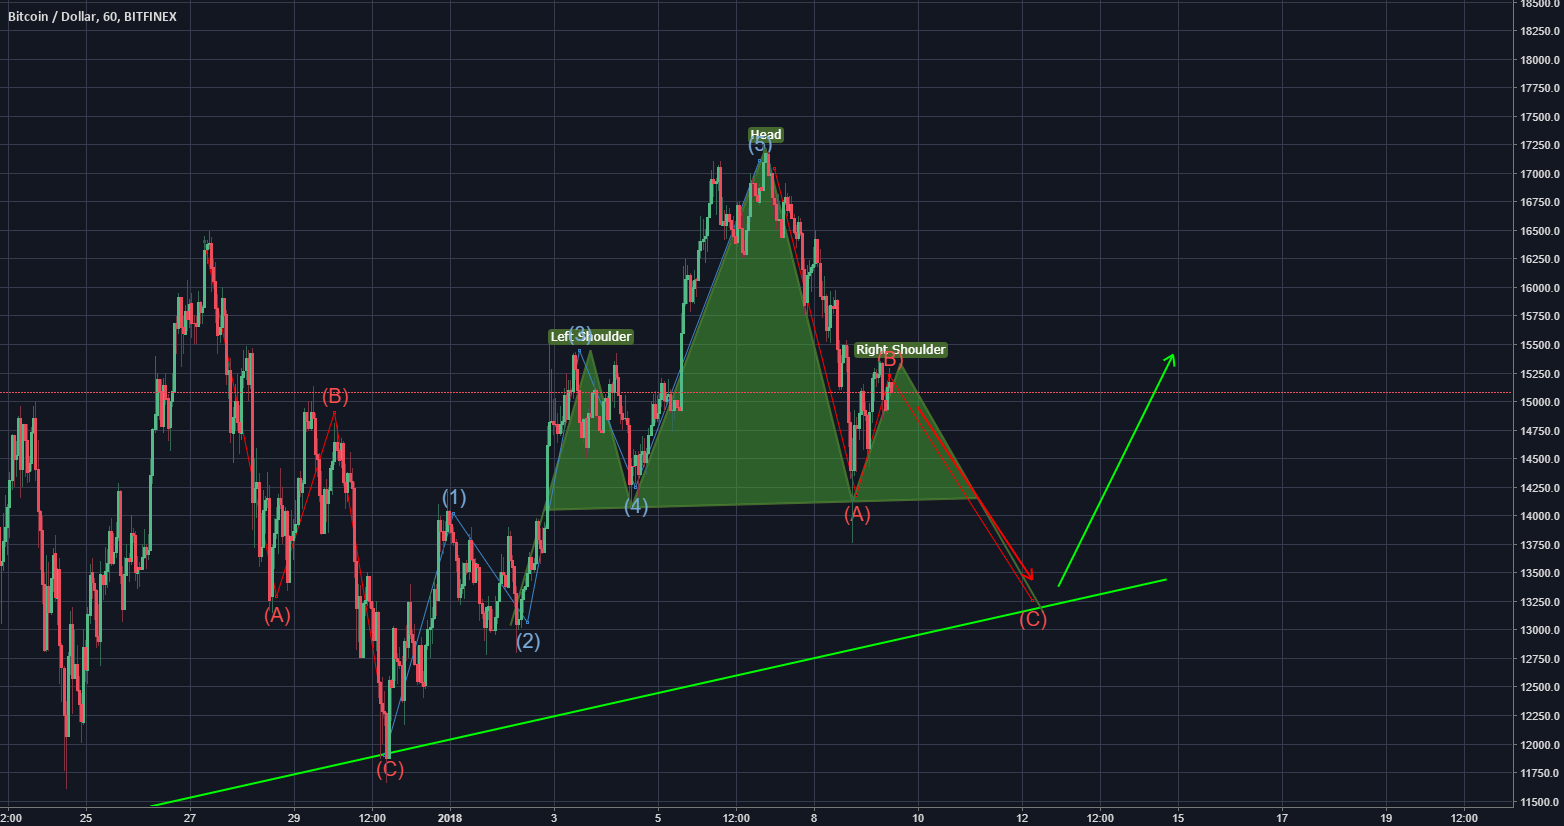 BTC head & shoulders